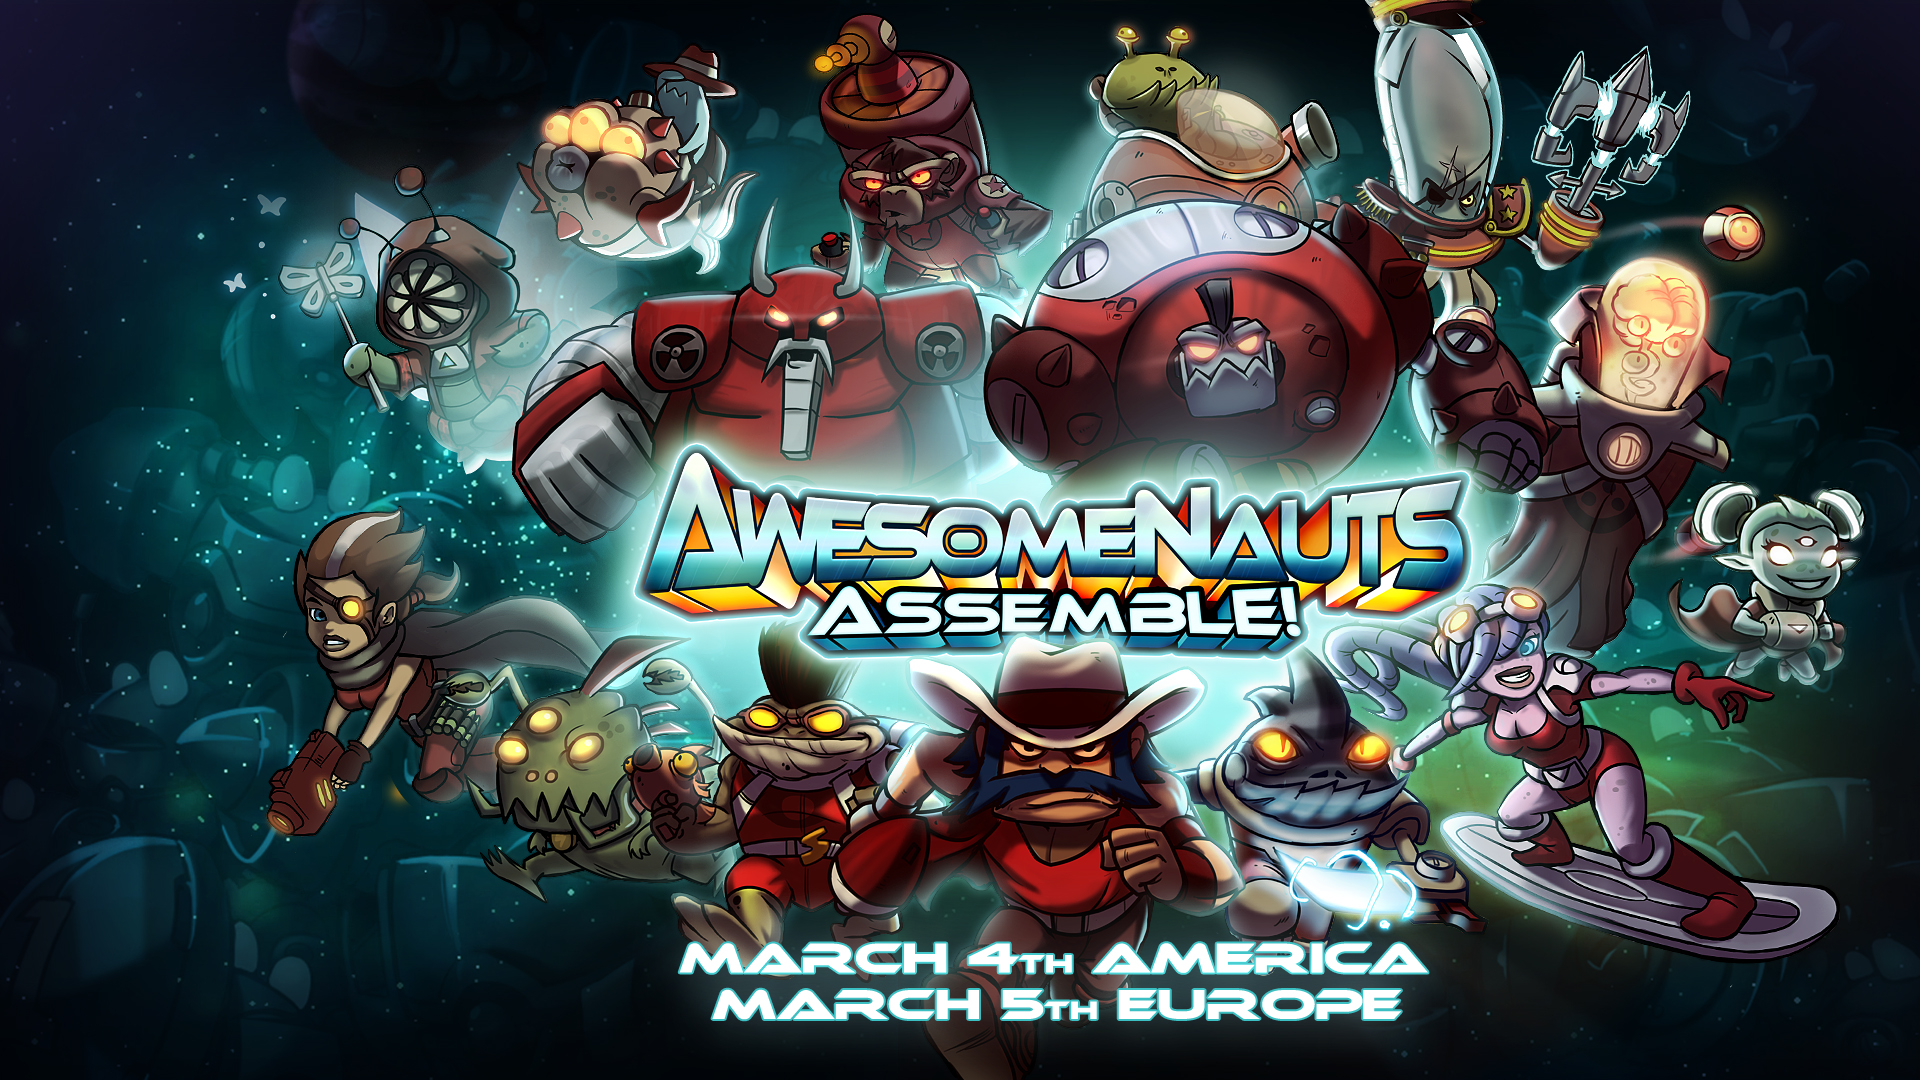 Awesomenauts Assemble!